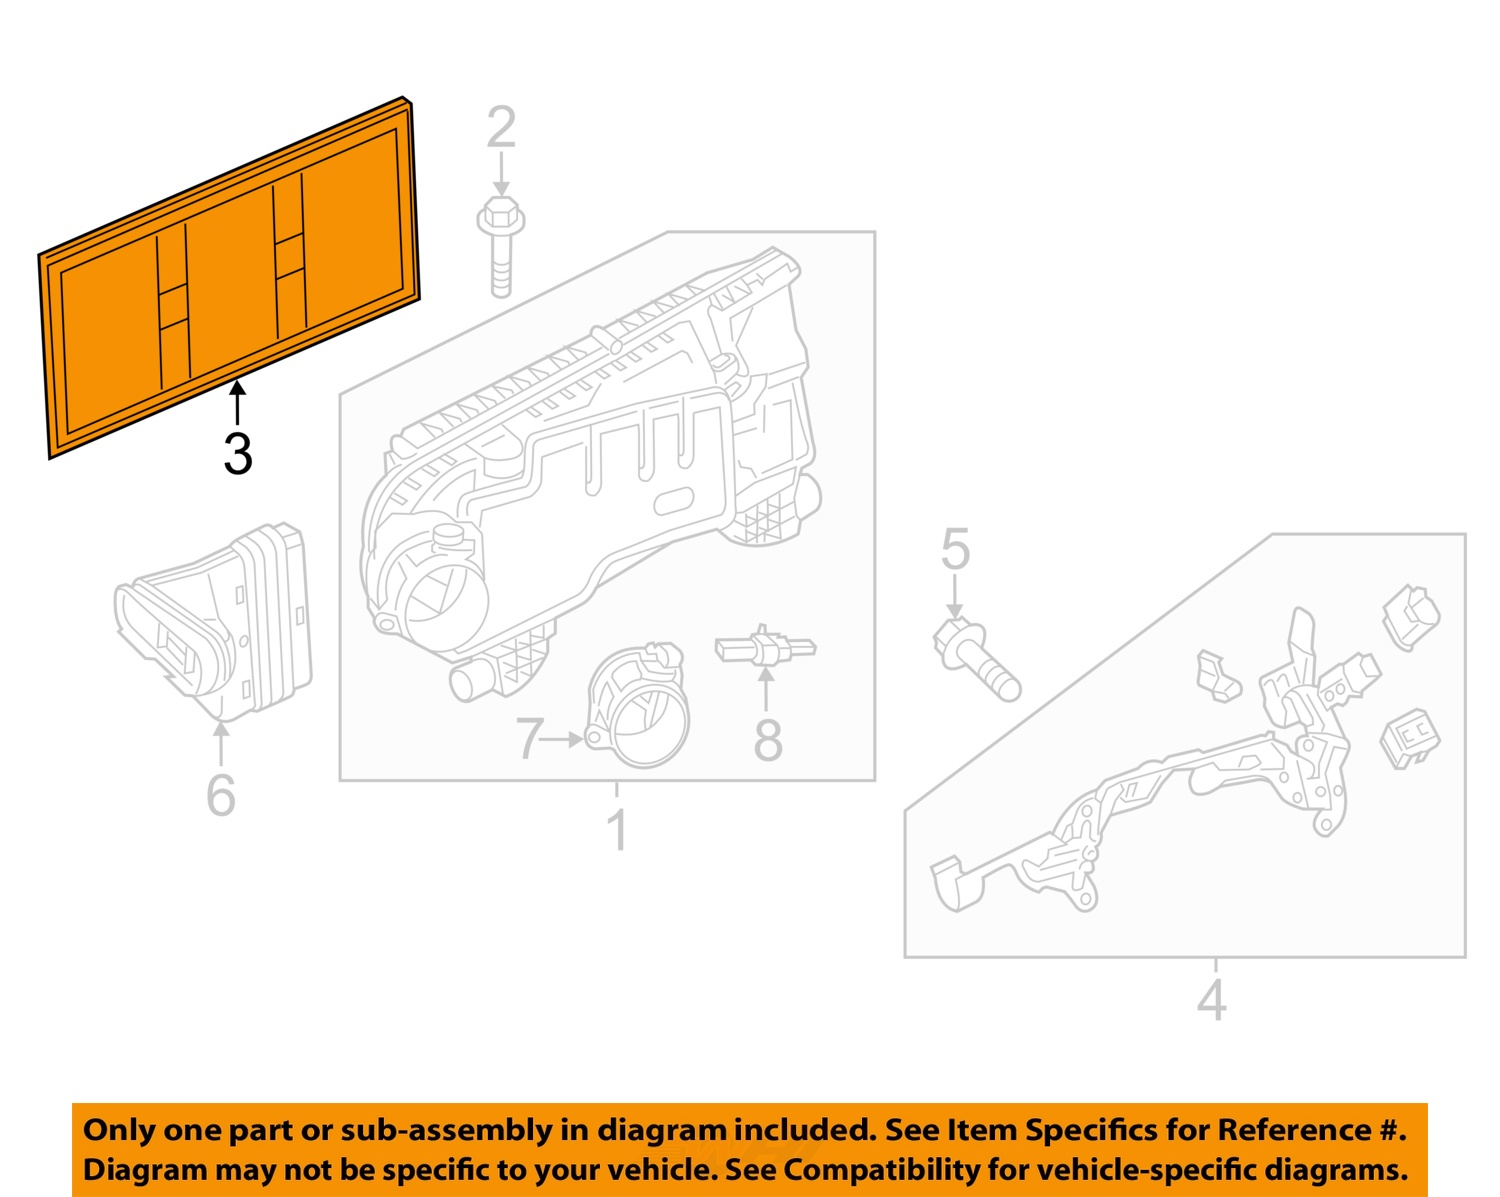 Mercedes 276 Engine Parts Diagram Wiring Diagrams Benz Ml320 Oem E350 Air Cleaner Filter 2007 C230 Truck